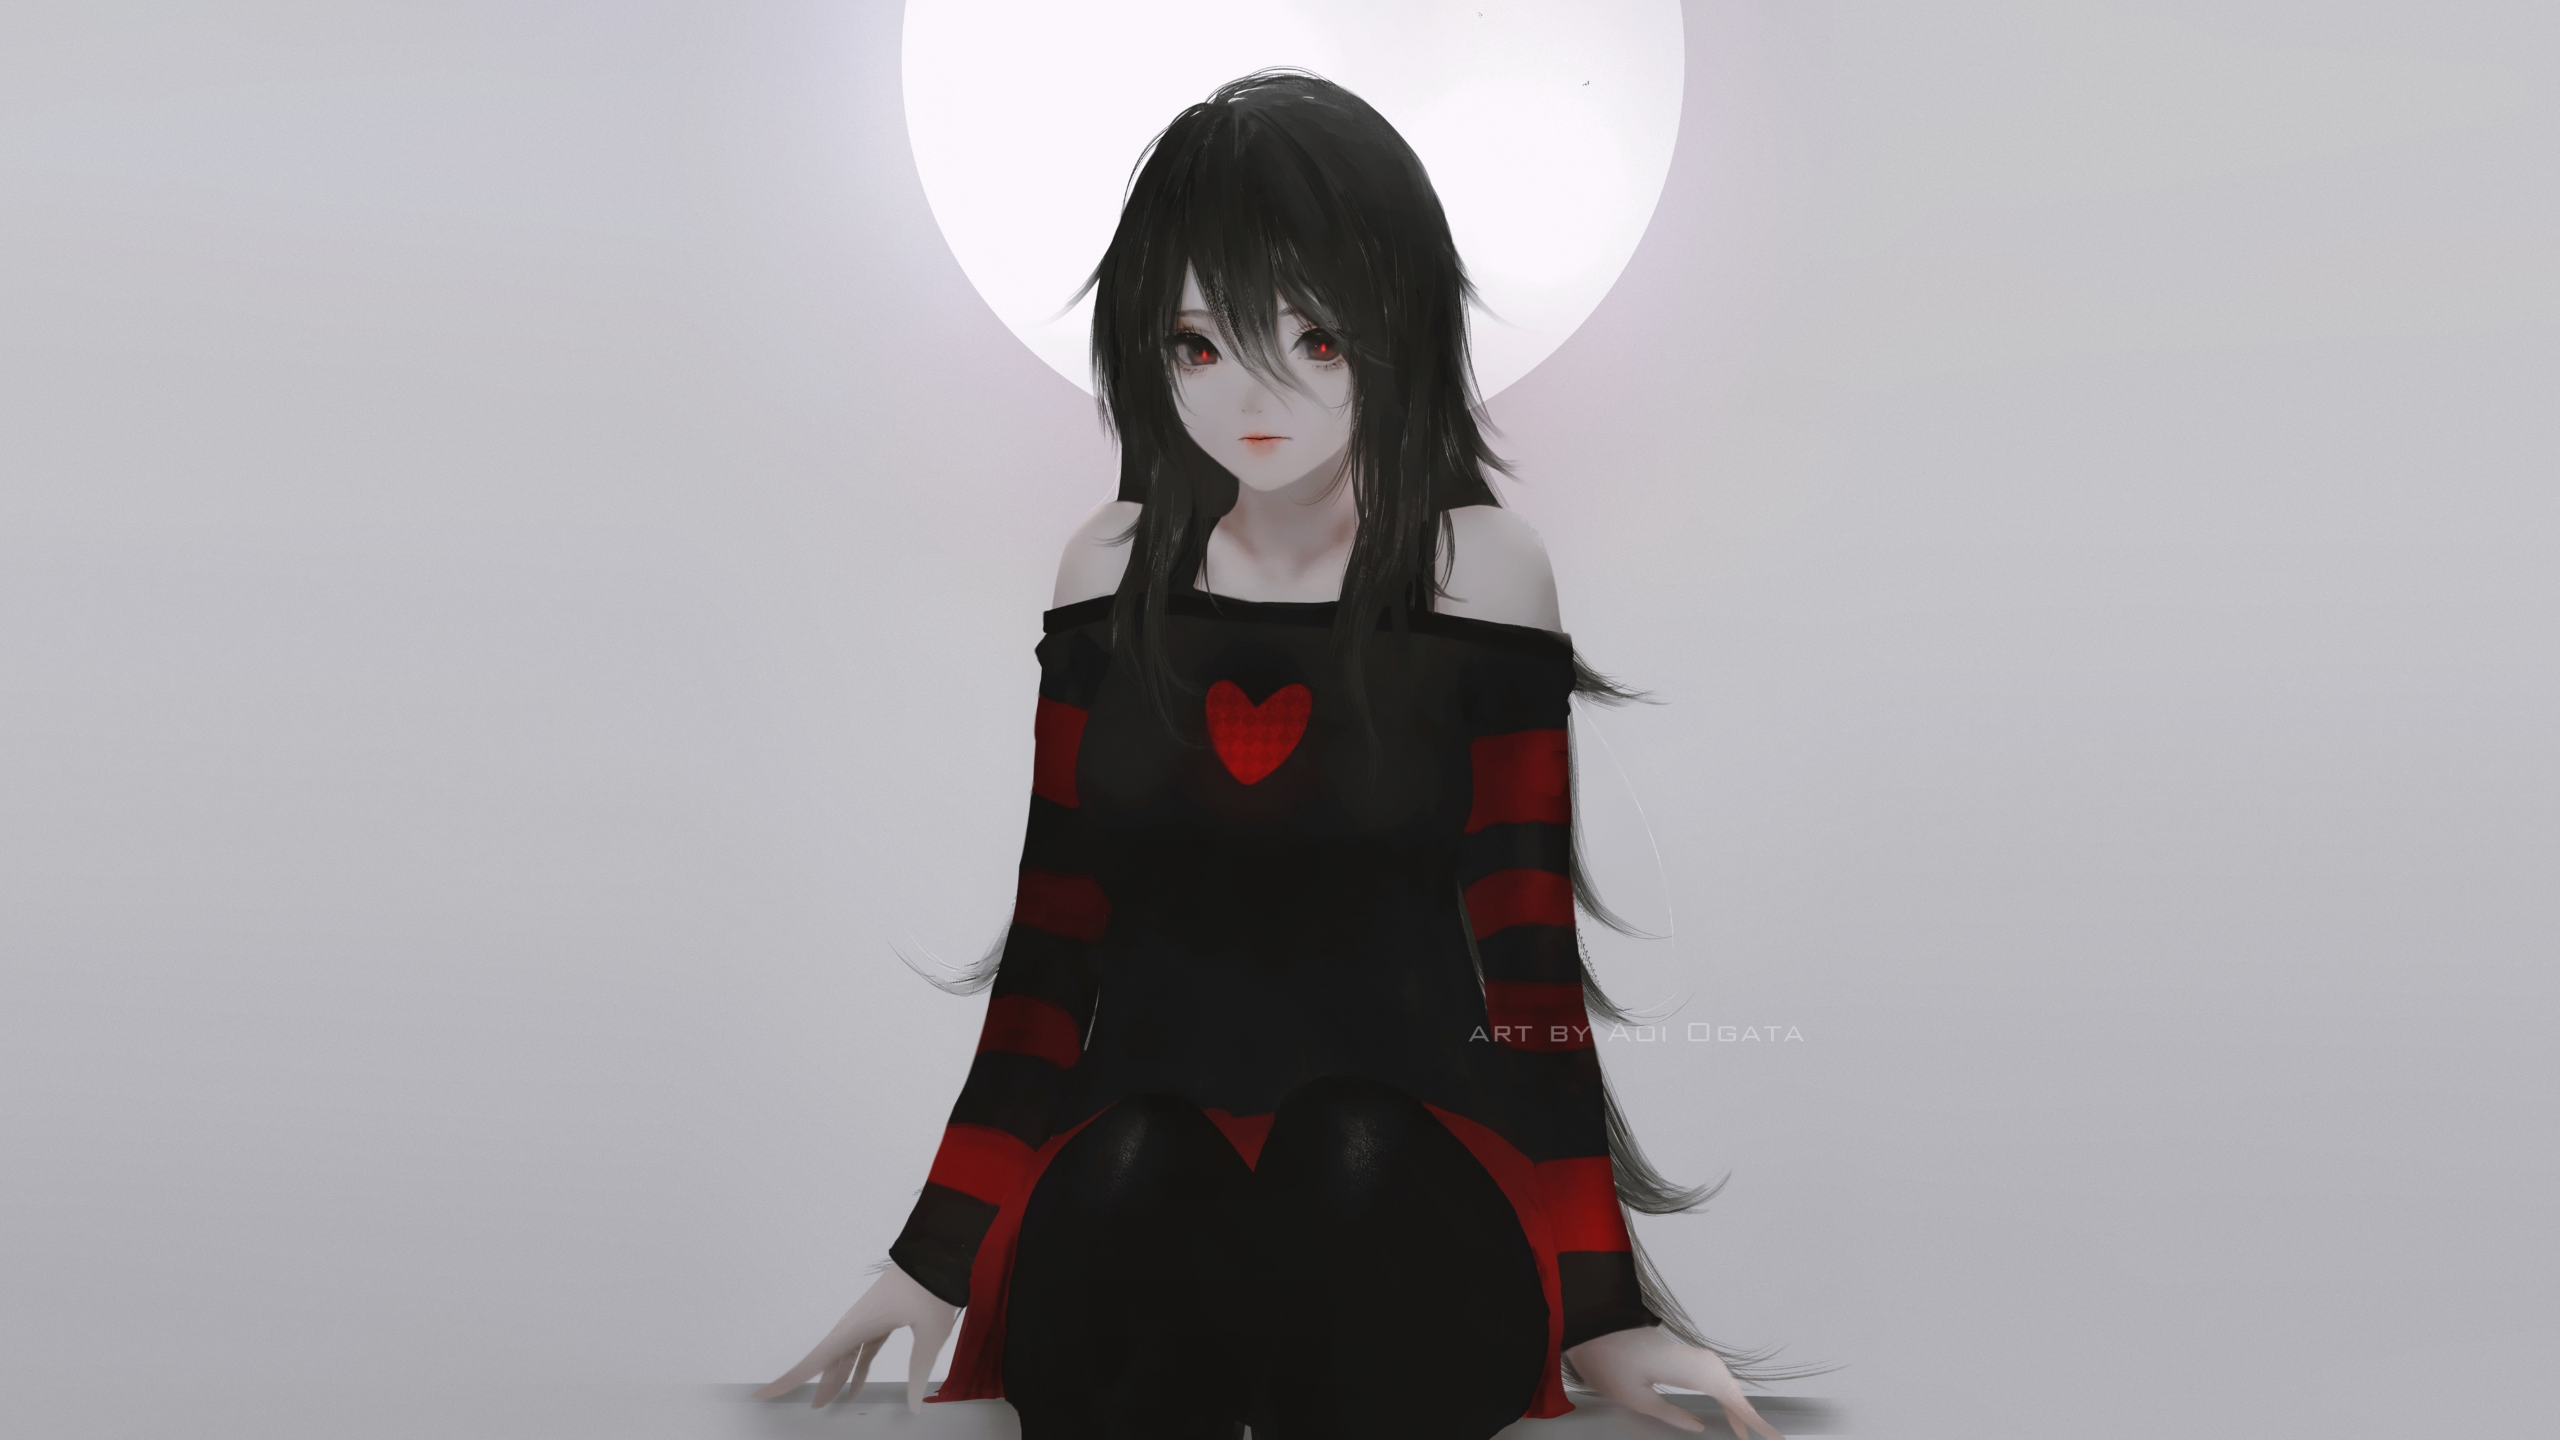 Anime 2560x1440 anime girls original characters black hair women long hair red eyes looking at viewer bare shoulders sweater pantyhose sitting gray background simple background minimalism portrait Aoi Ogata artwork digital art drawing